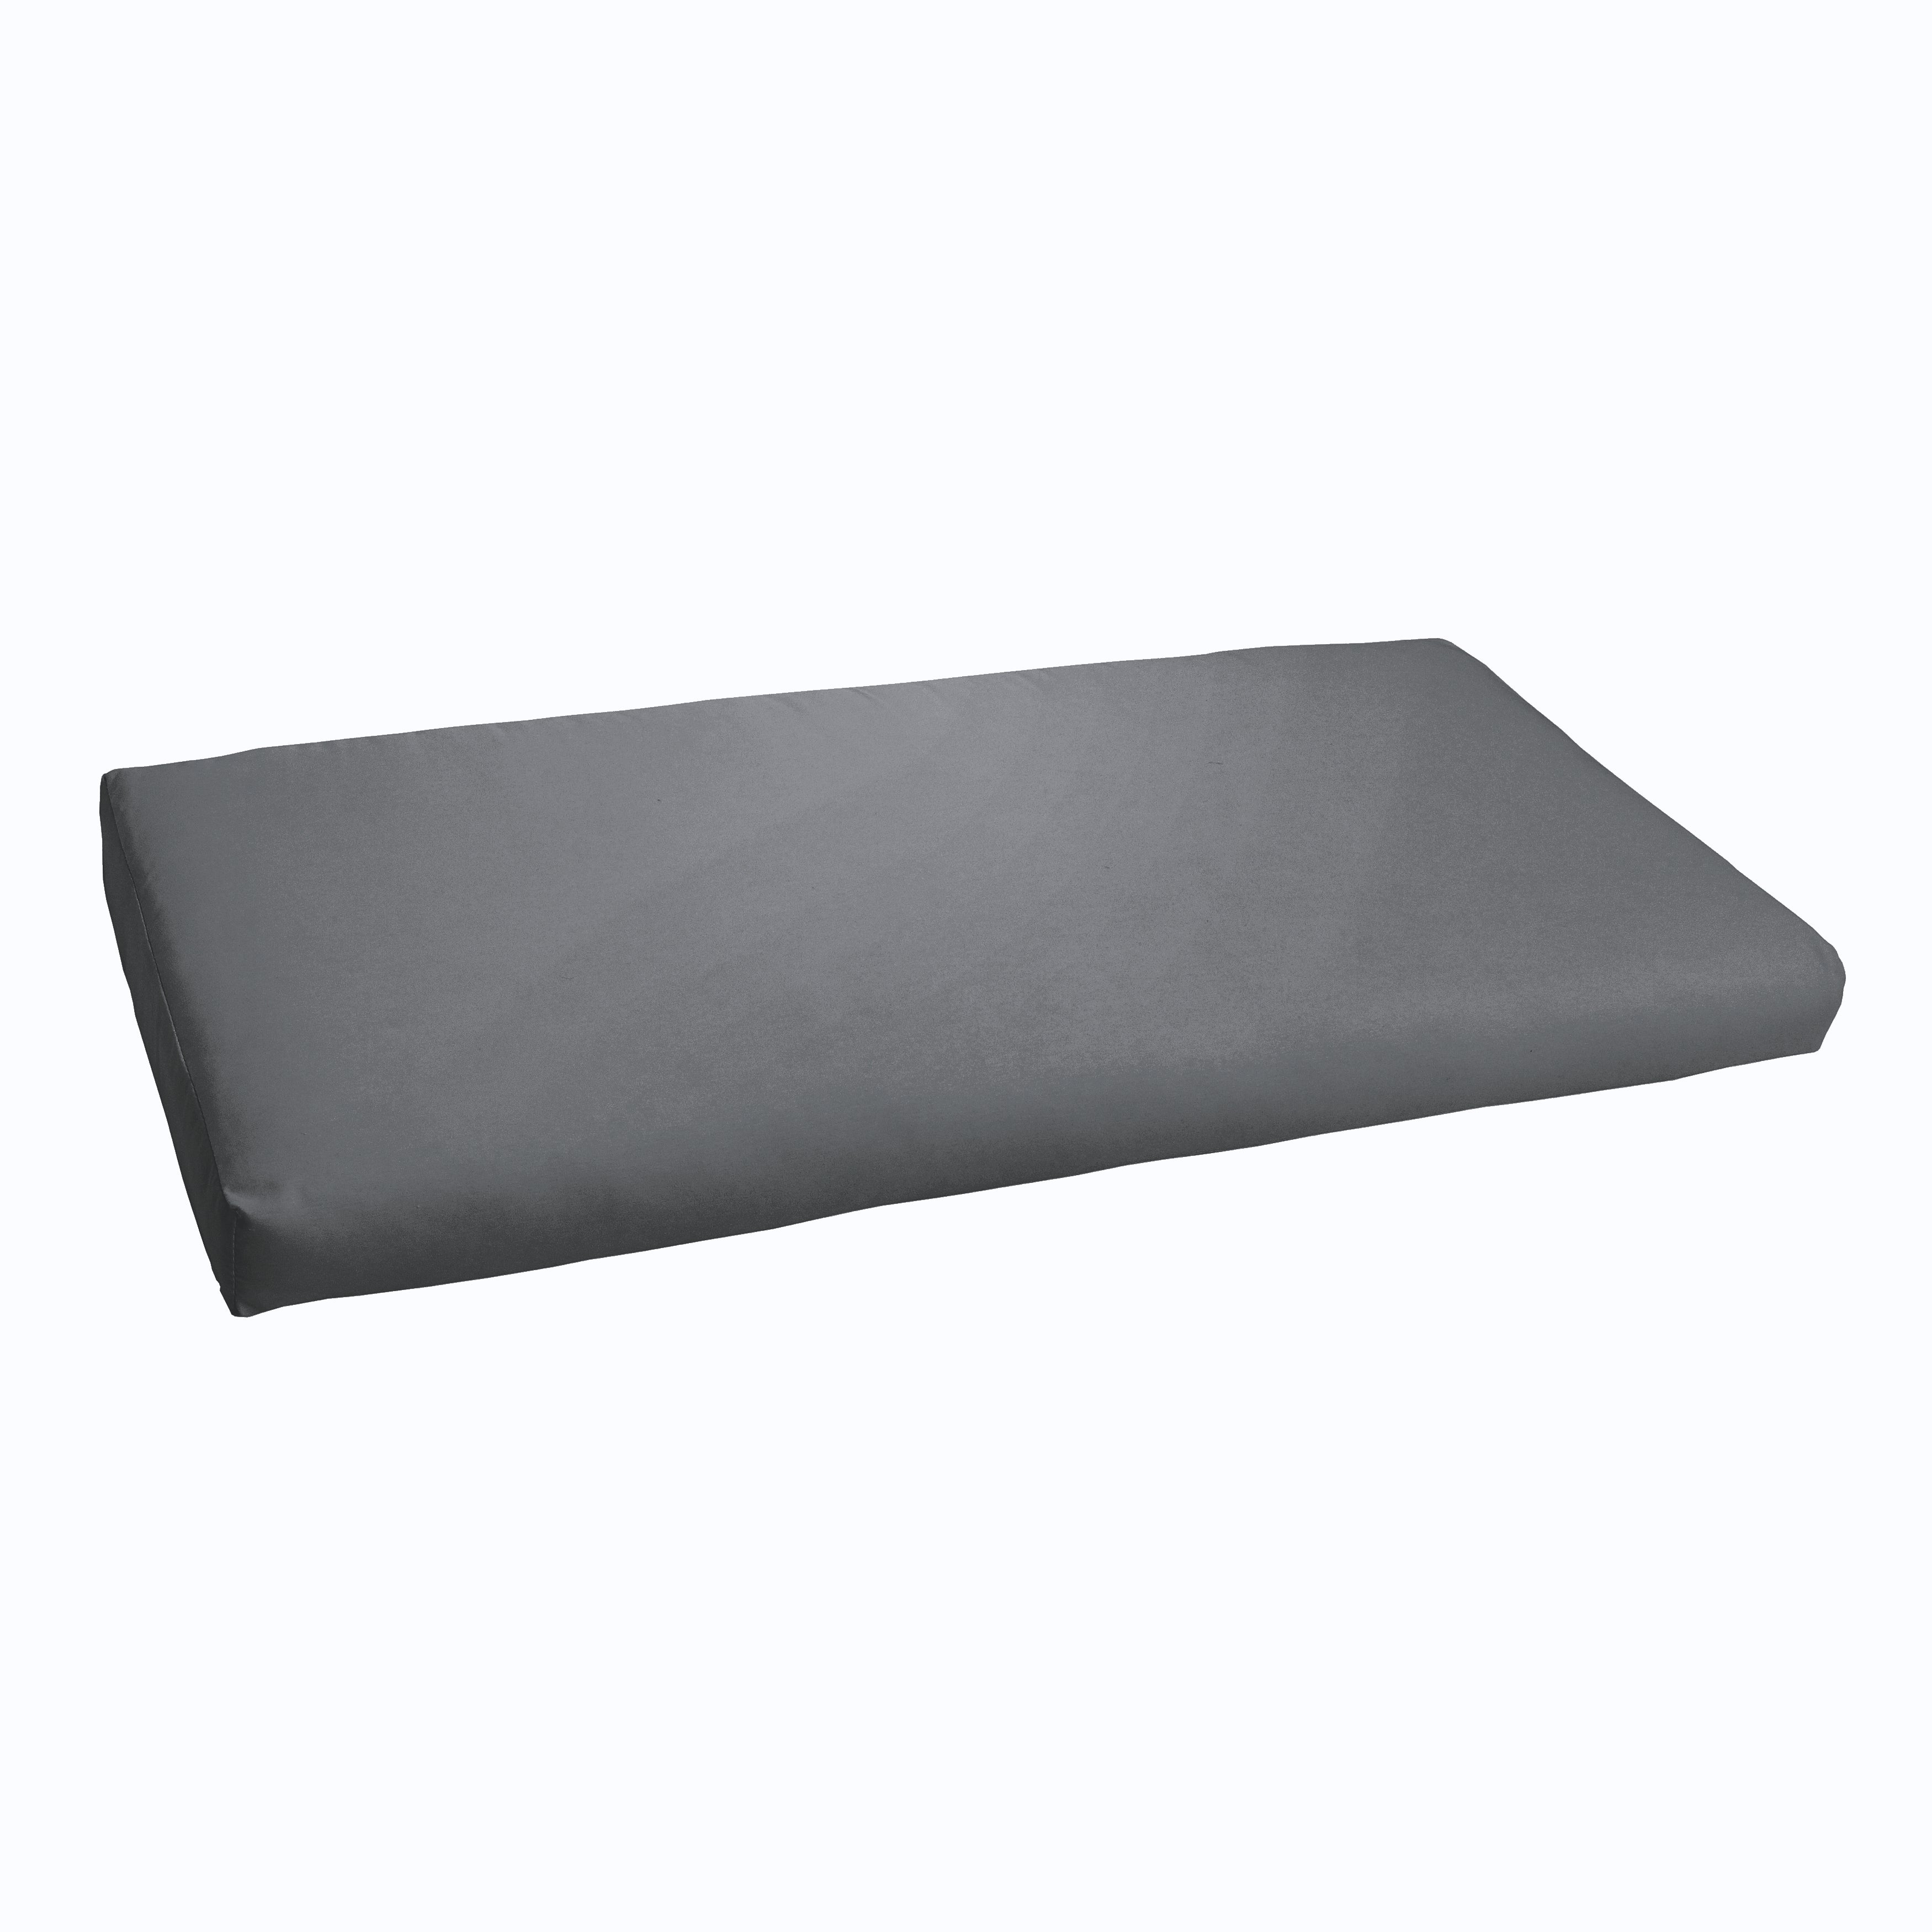 Sloane Charcoal Grey 48 Inch Indoor Outdoor Bristol Bench Cushion Free Shipping Today 11351501